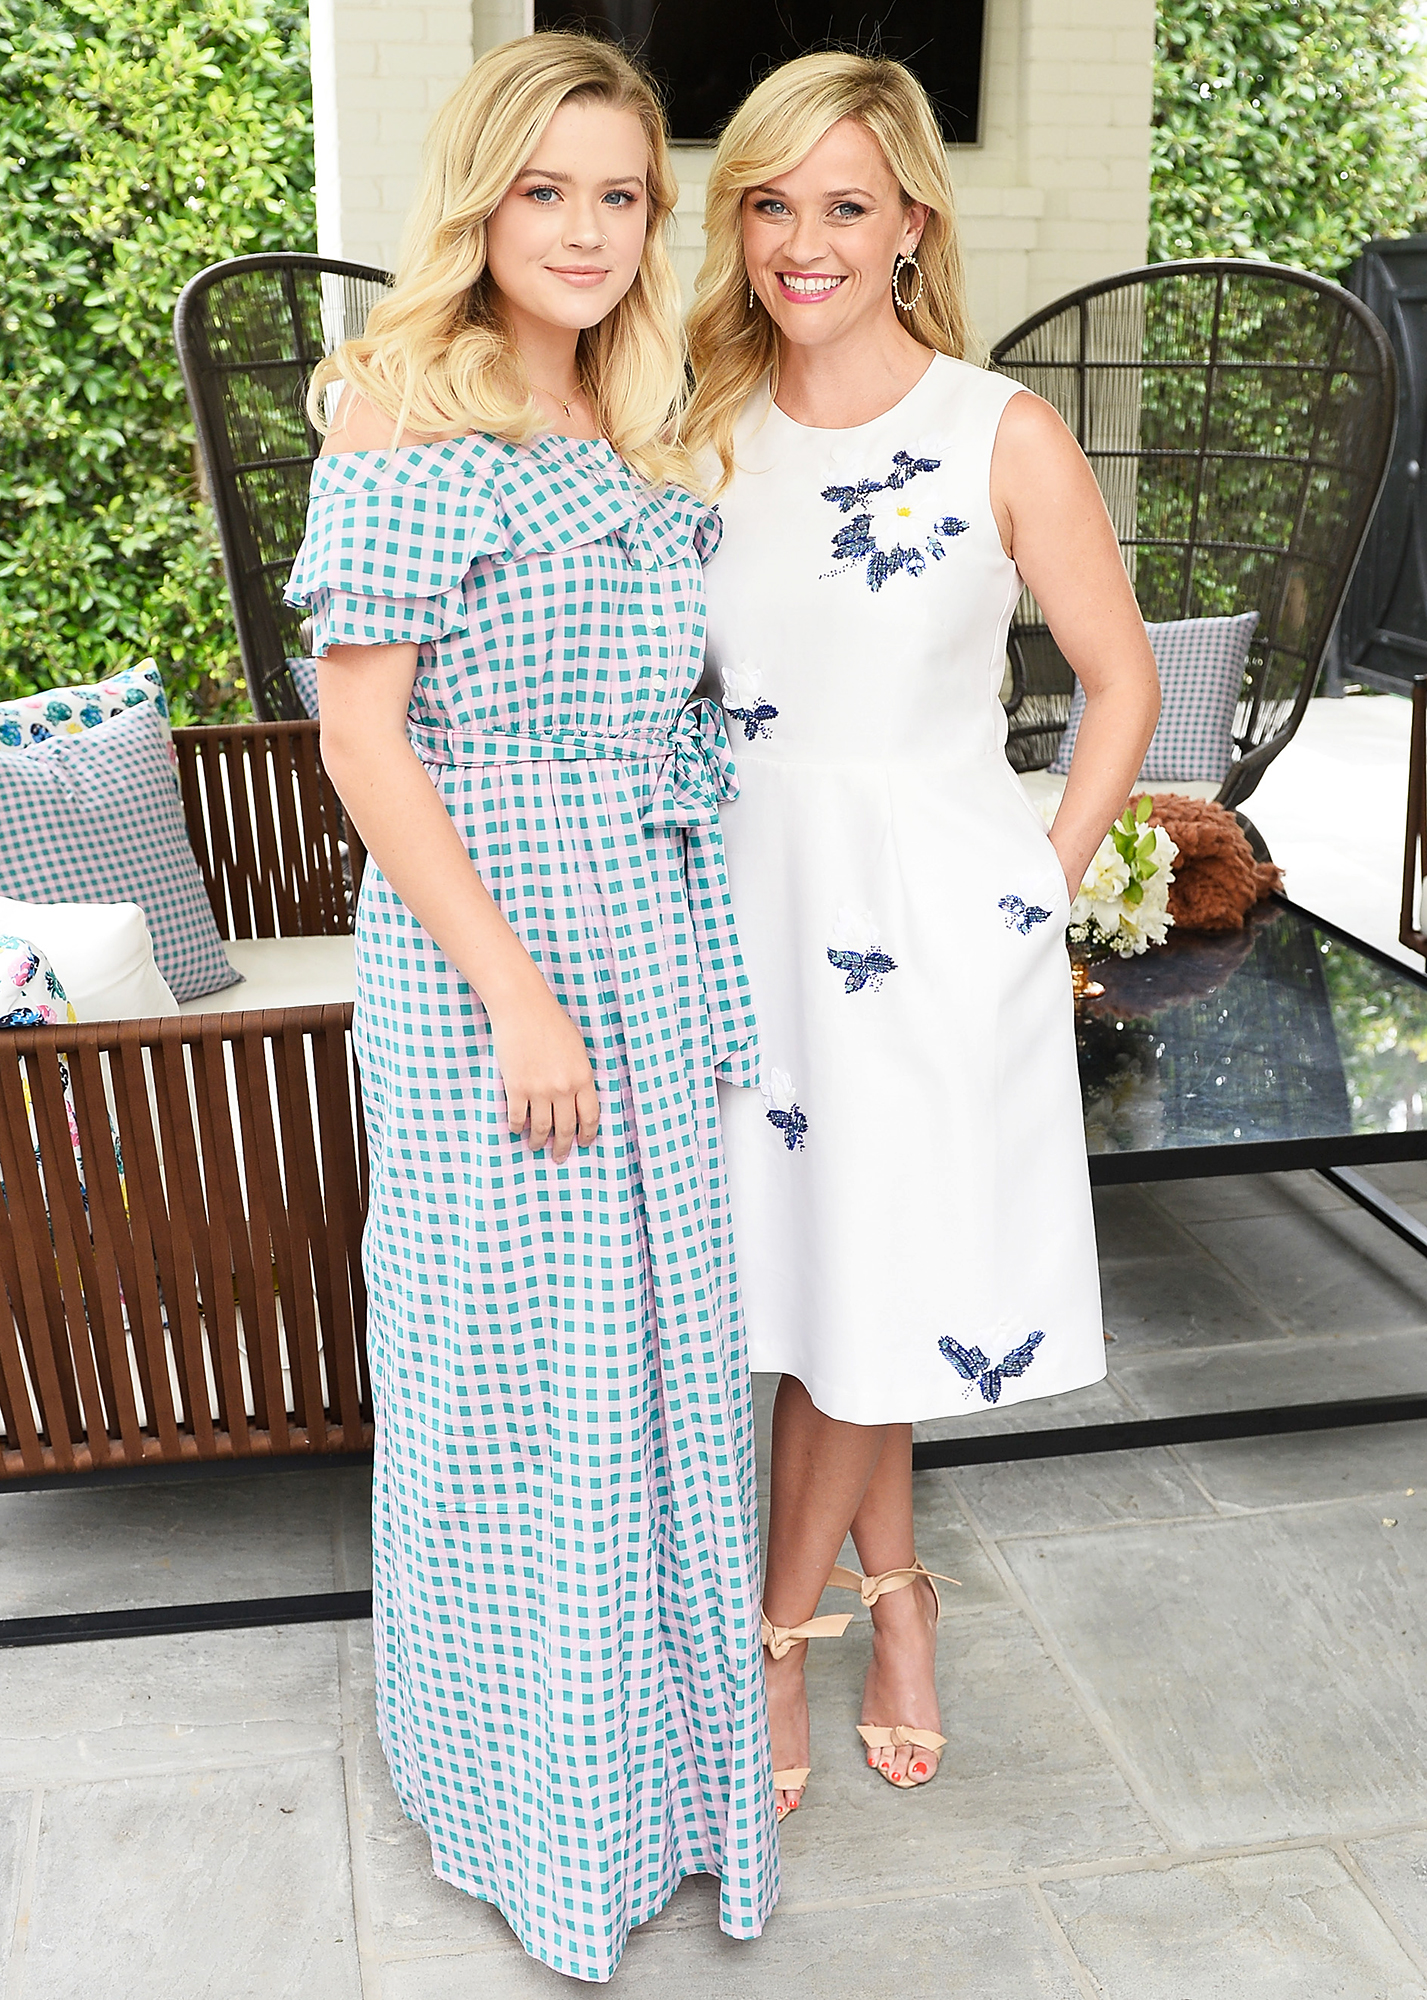 Reese Witherspoon Ava Phillippe Best Friends Unbreakable Bond